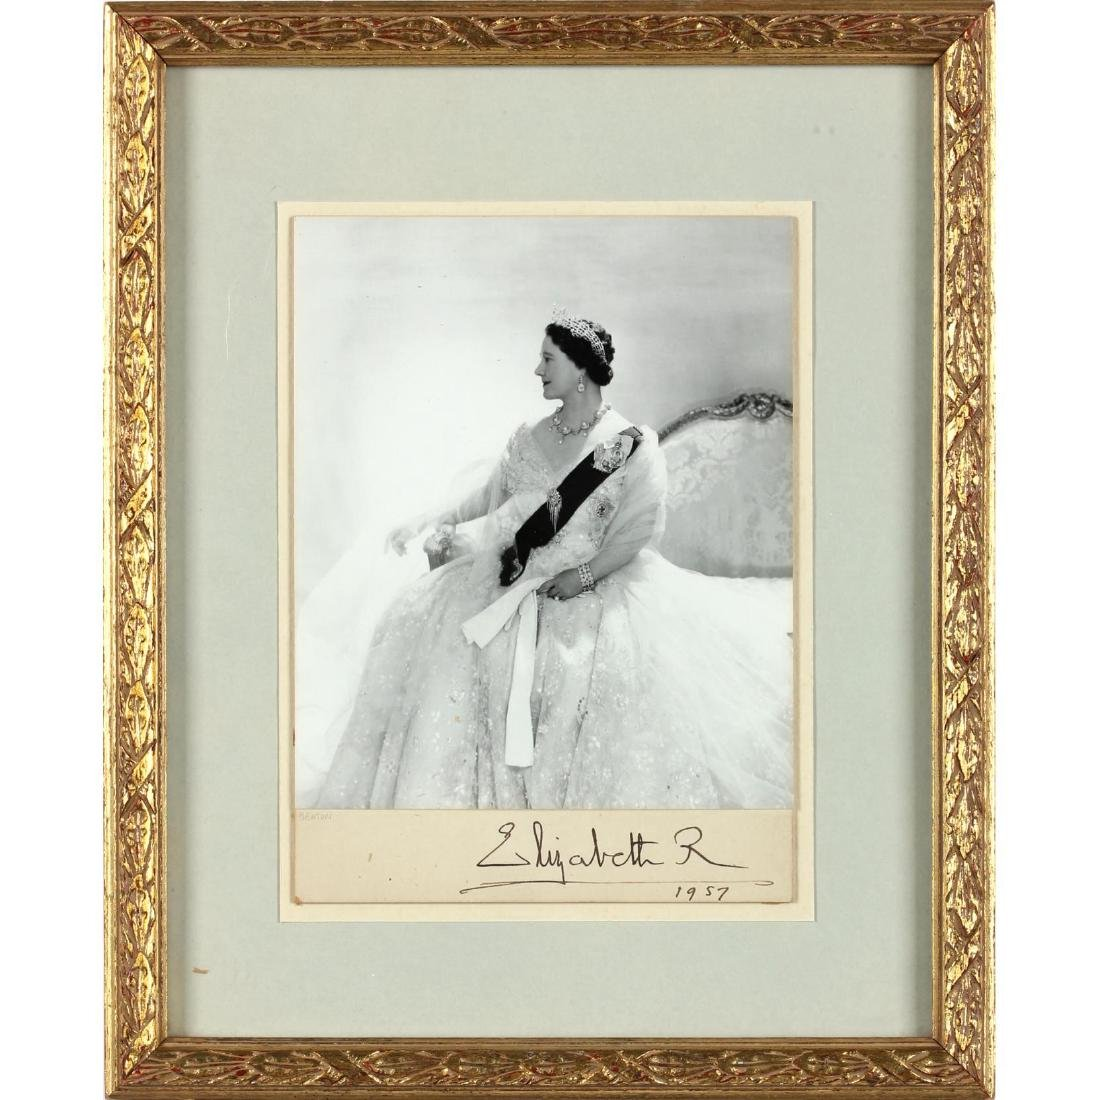 Queen Mother Signed Photo by Cecil Beaton